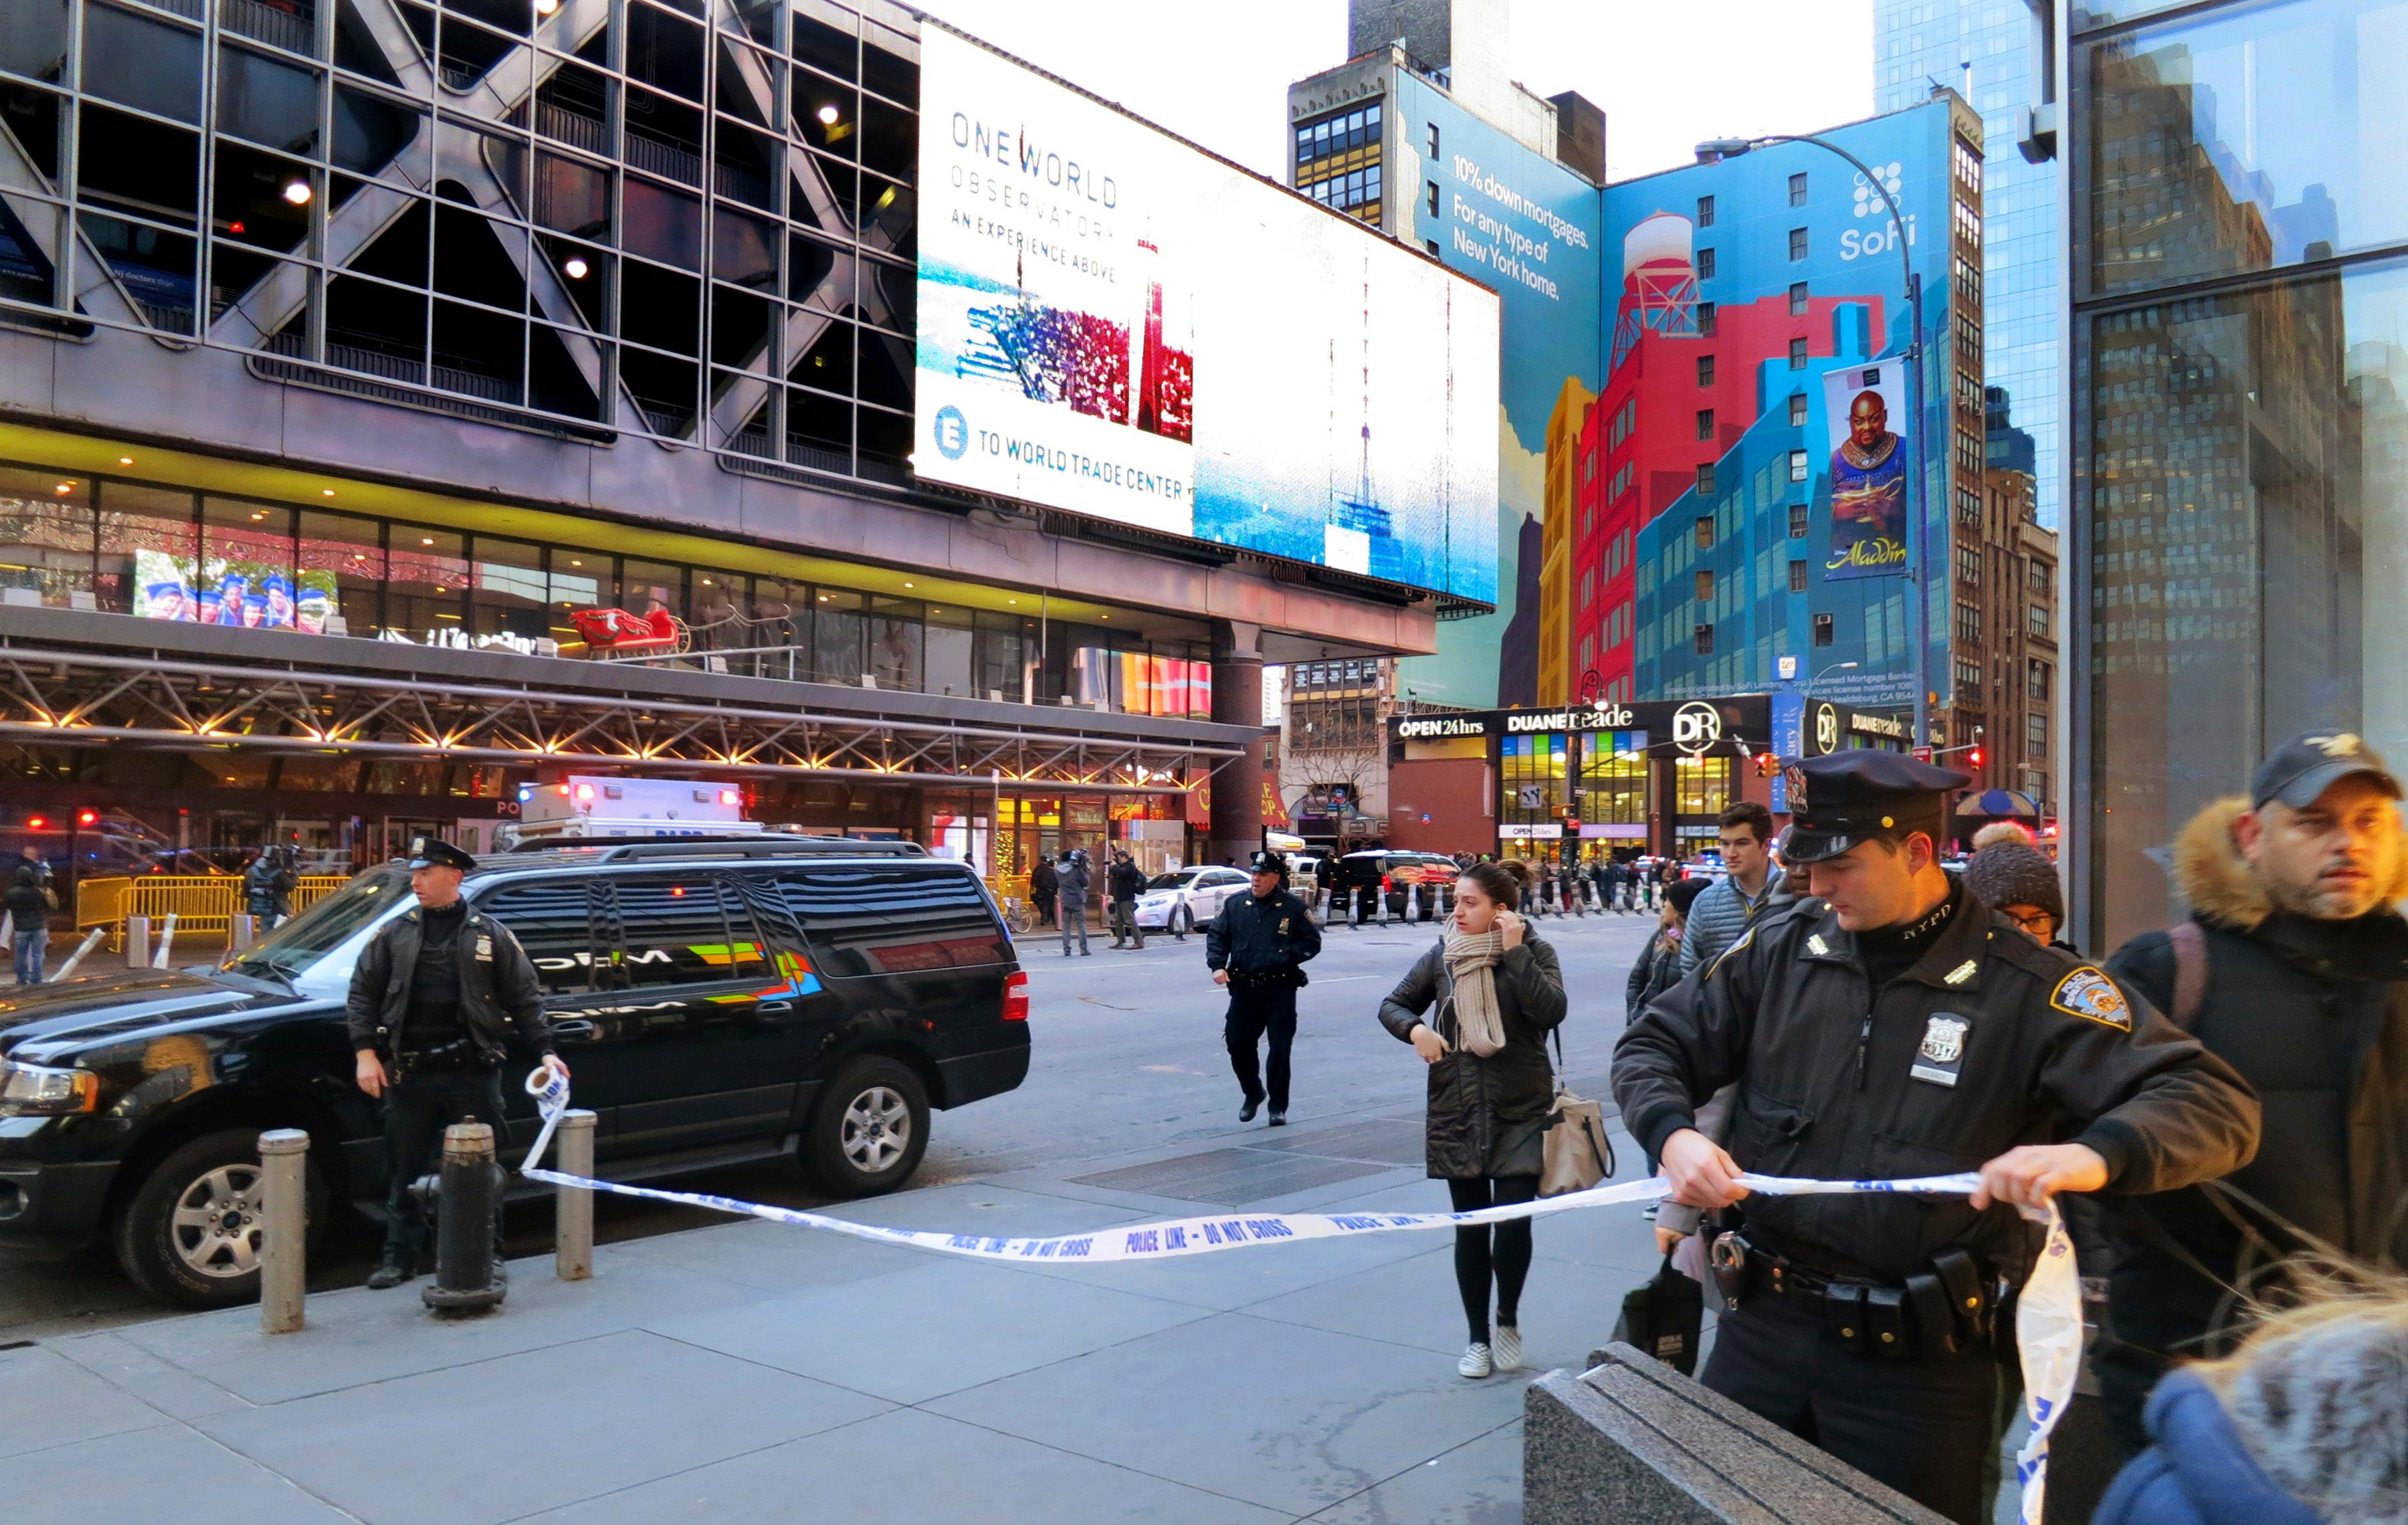 Police secure Eighth Avenue outside the Port Authority Bus Terminal following an explosion near New York's Times Square on Monday, Dec. 11, 2017. (AP Photo/Chuck Zoeller)<p></p>